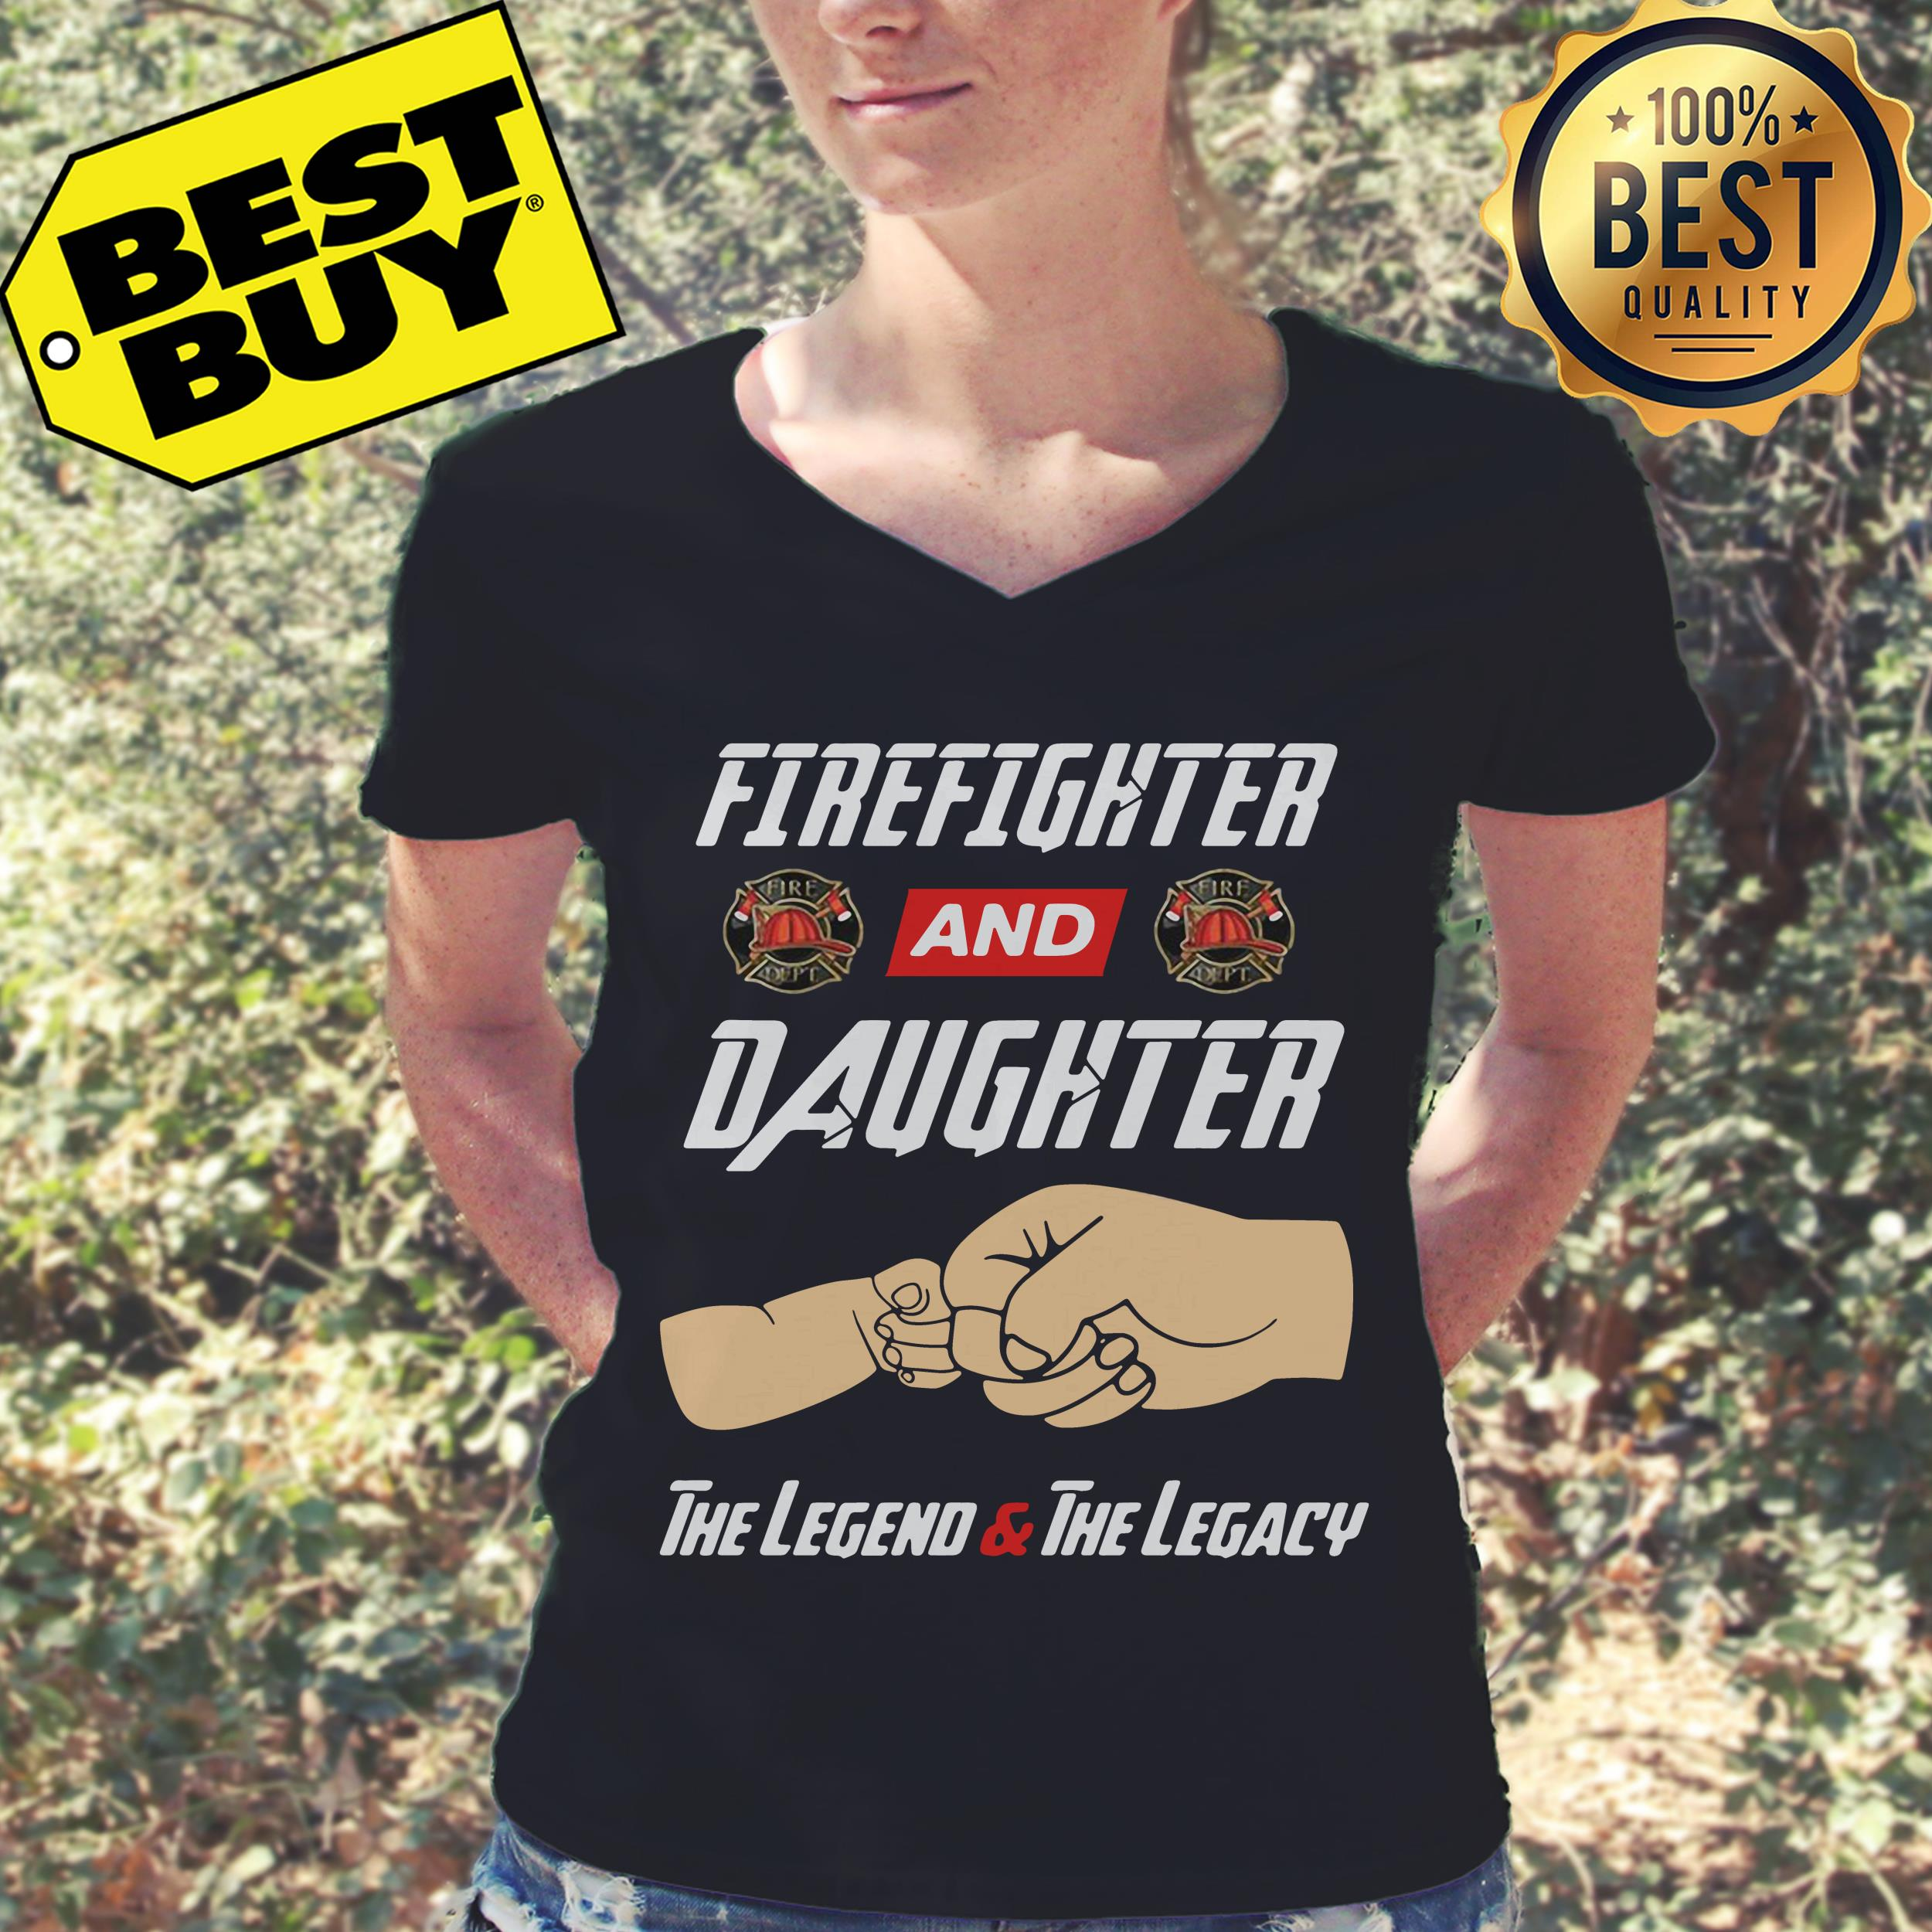 Firefighter and daughter the legend and the legacy v-neck